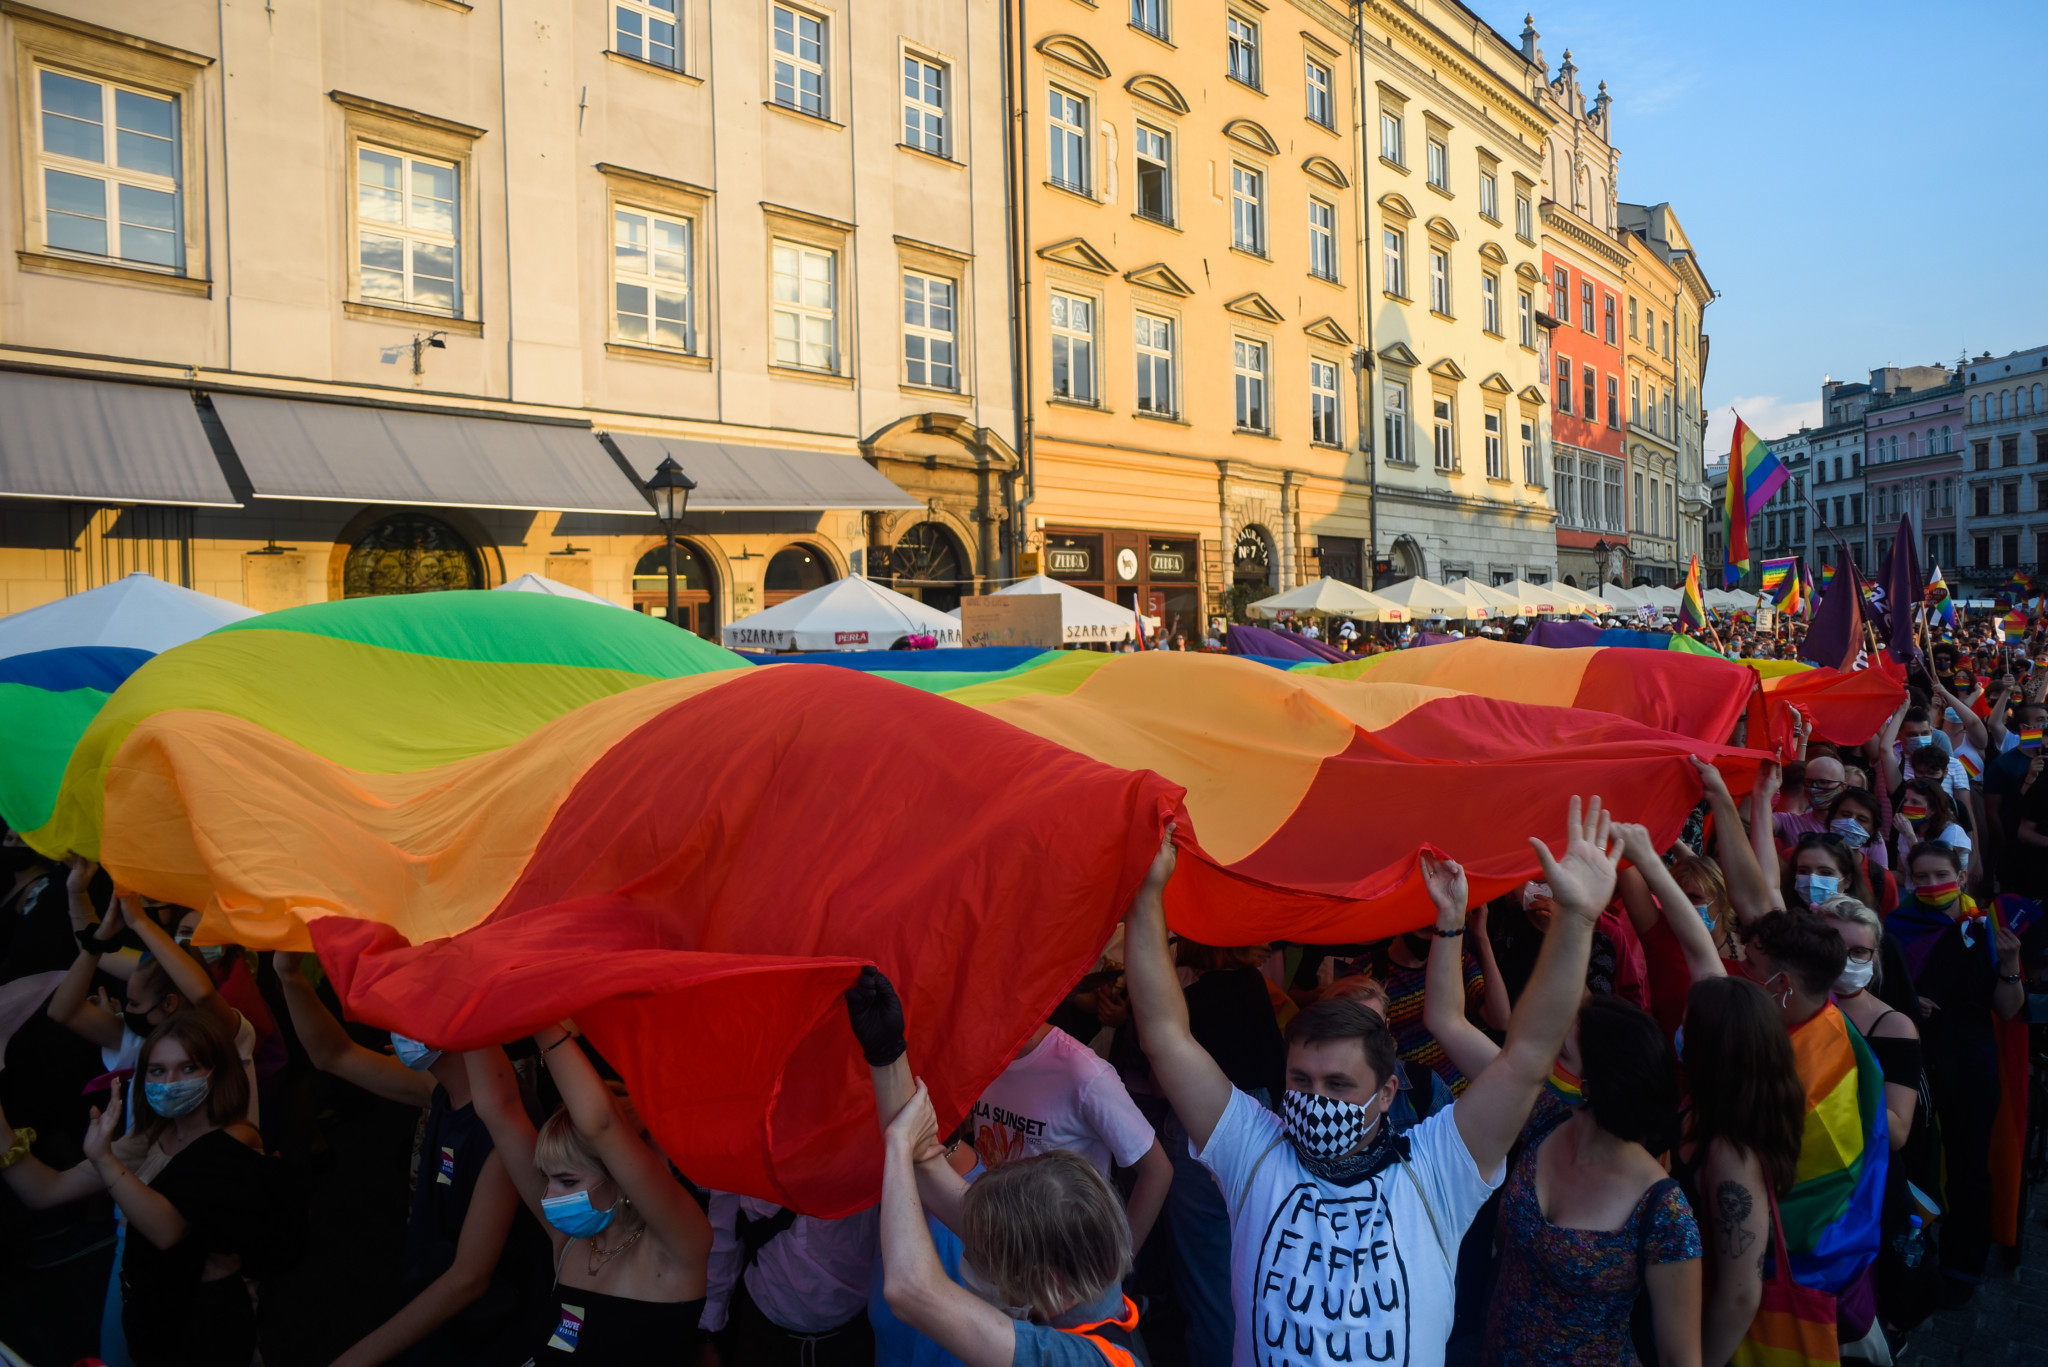 EOC claims rights will be respected at 2023 European Games amid criticism over Poland's LGBT-free zones